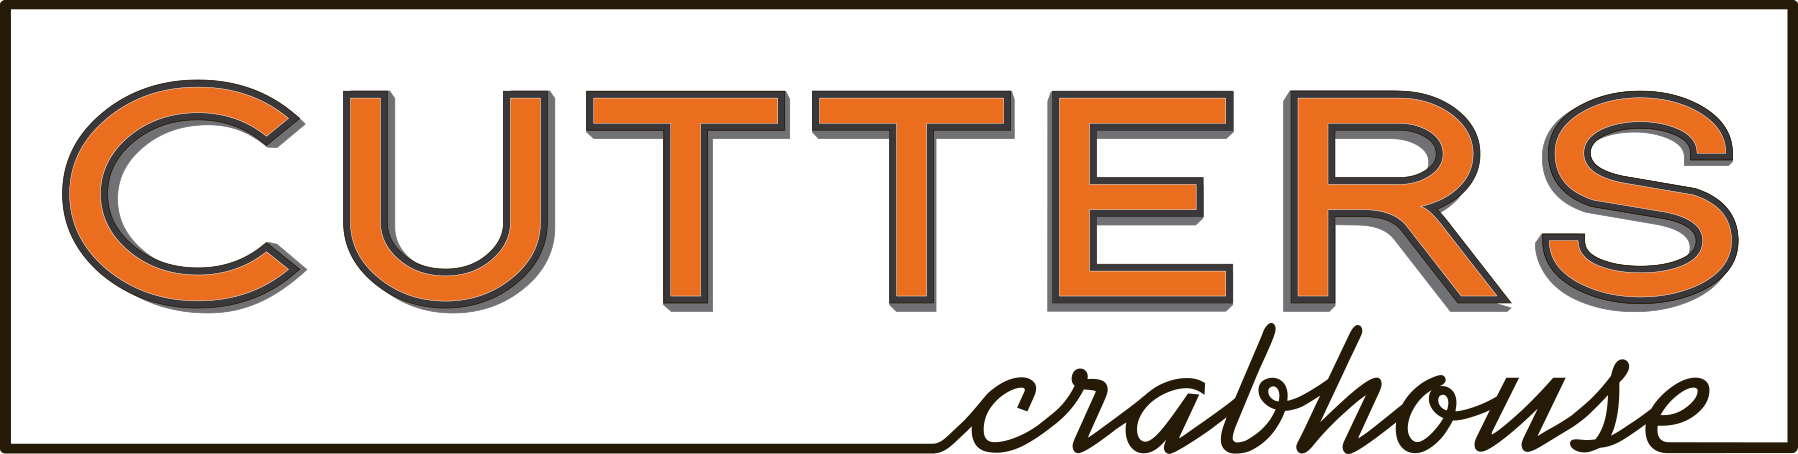 Cutters Logo (large)